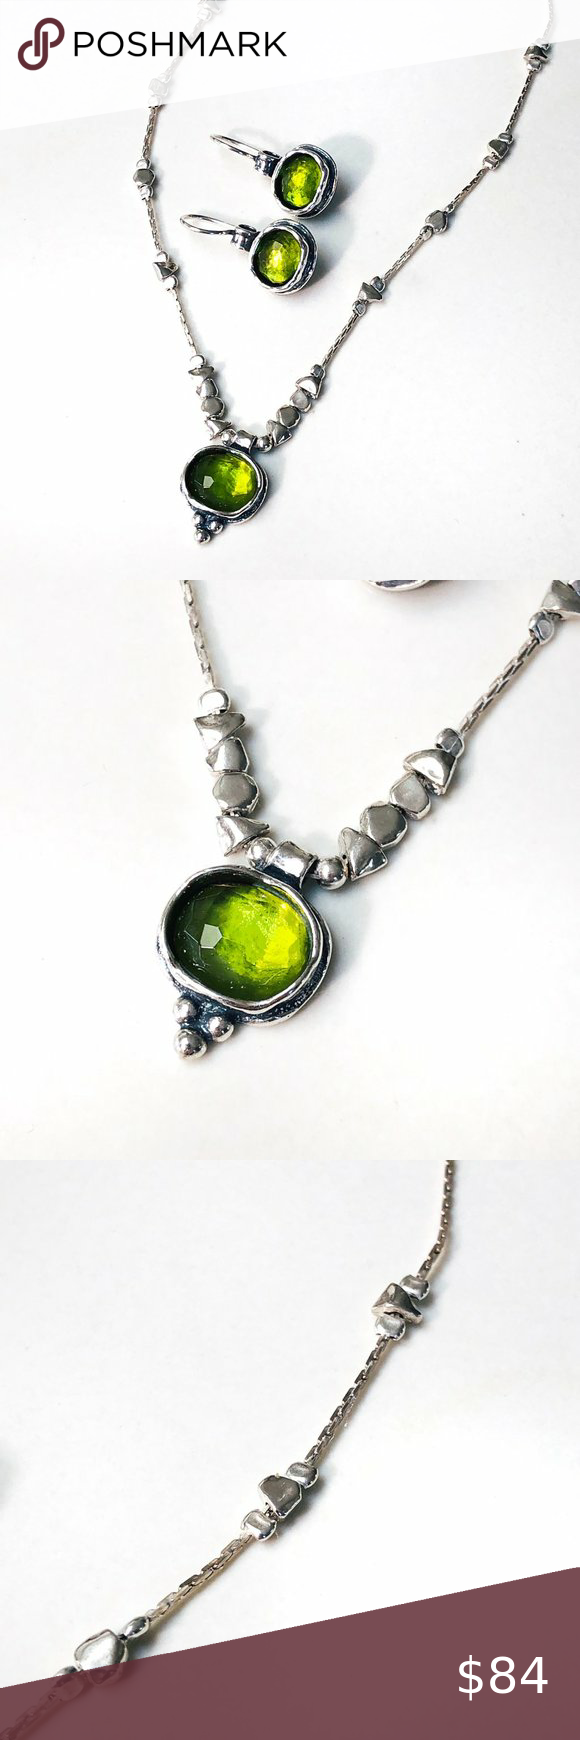 Green Glass Matching Necklace /& Earing Set